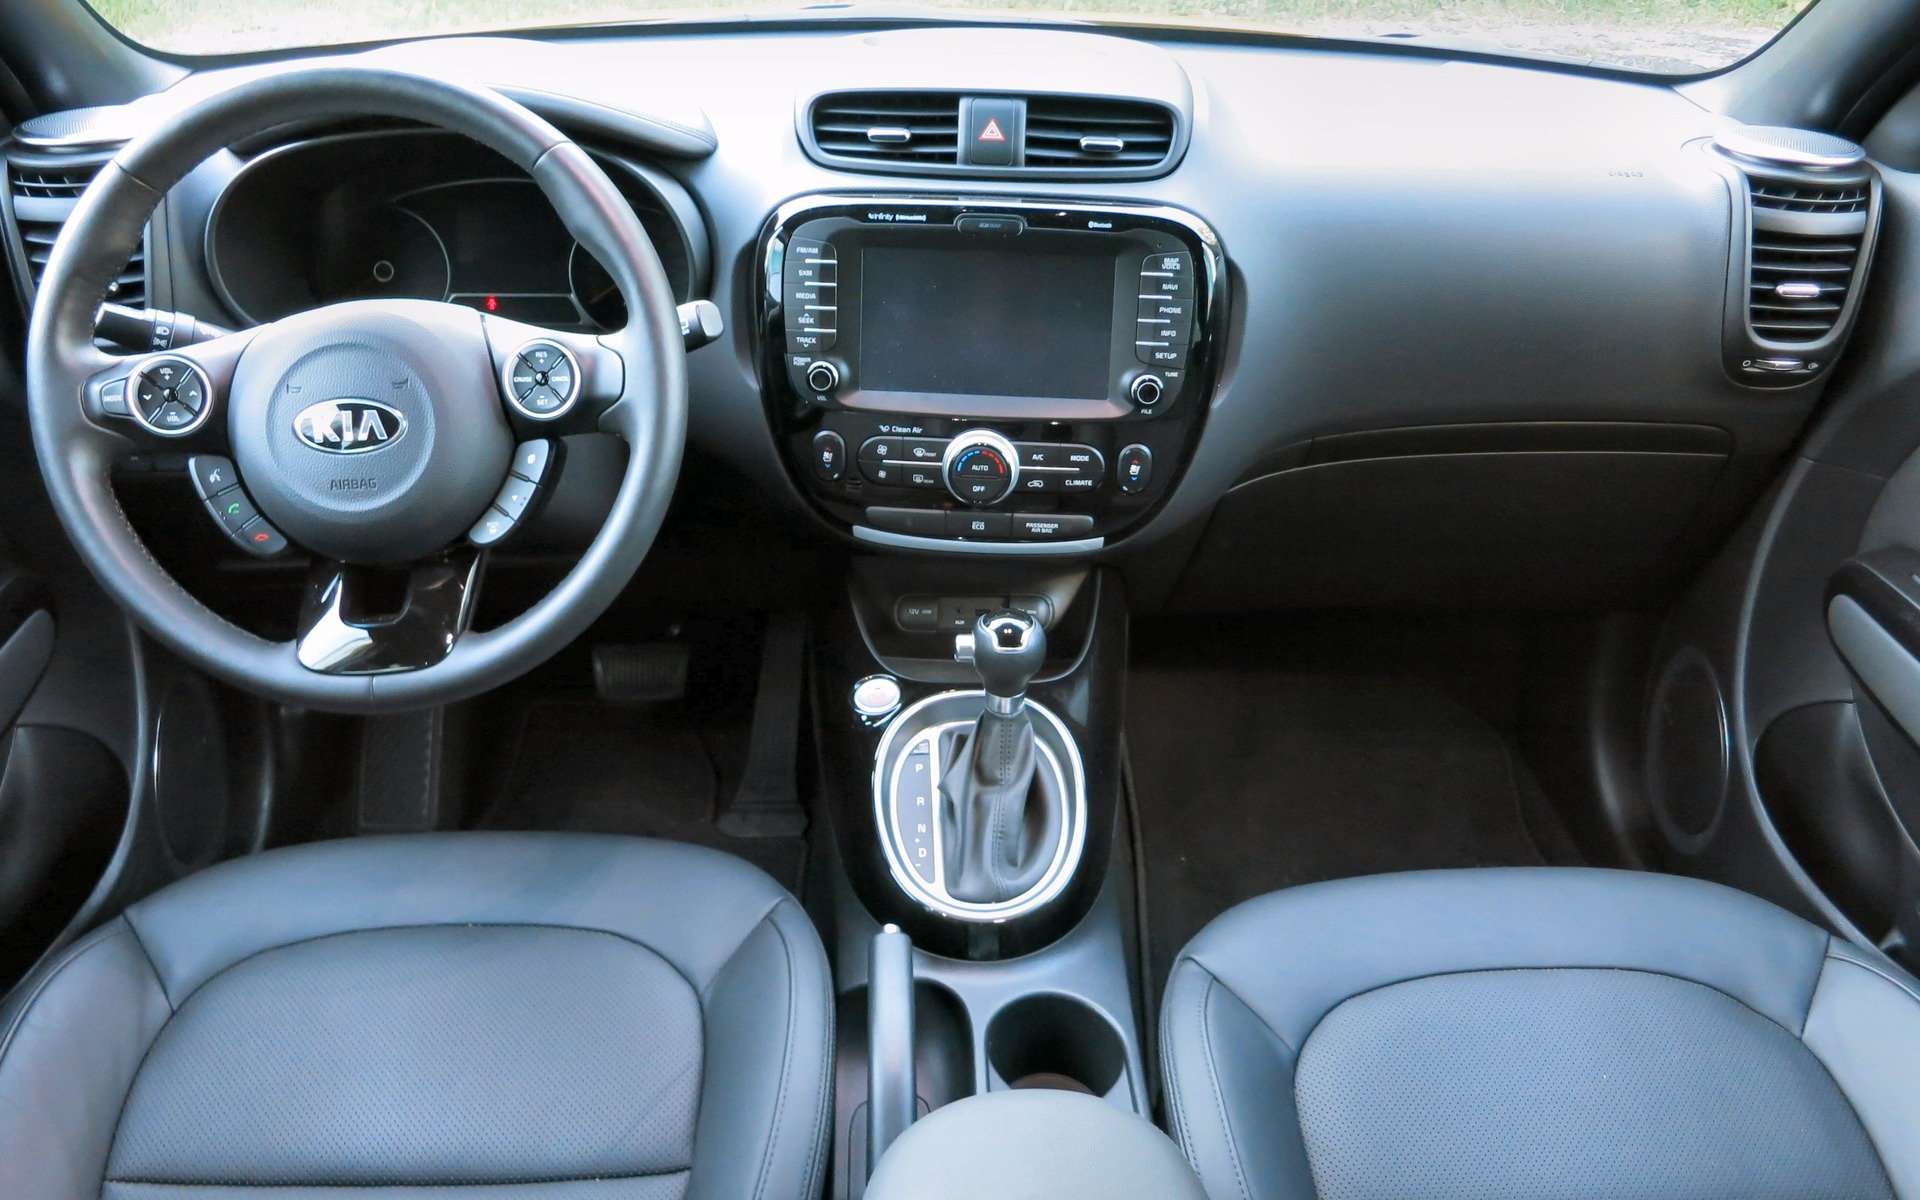 Kia Hasn T Been Shy About Its Aspirations To Draw In Buyers With Premium Interior Trappings And